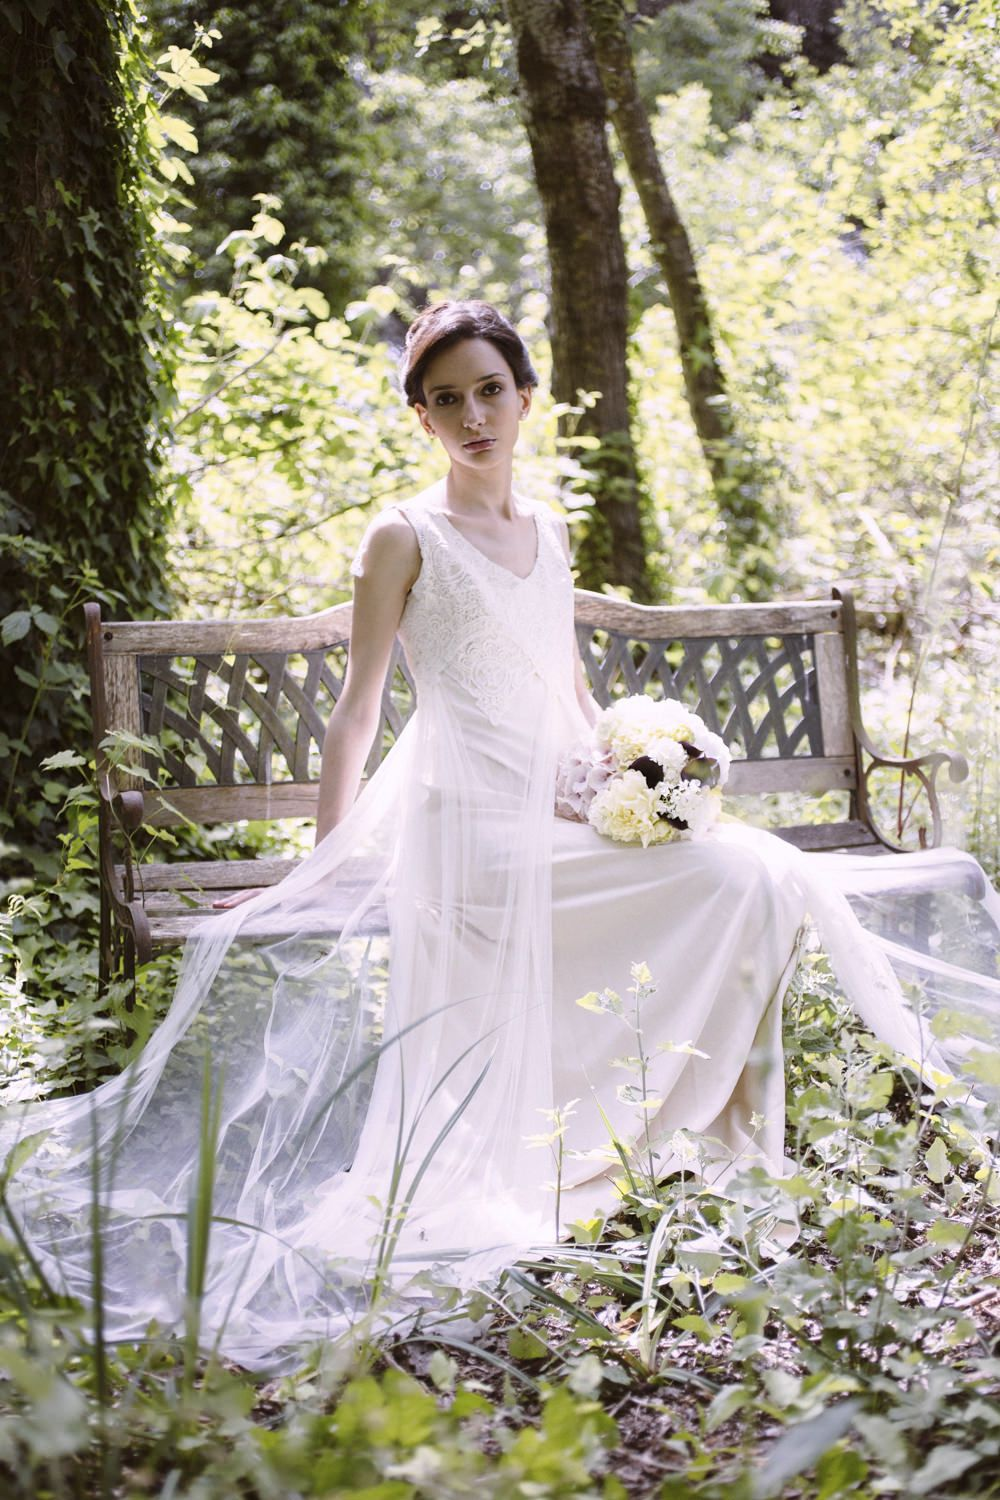 Bride in a Delicate Tulle Gown | Boho Bride | Rustic Italian Wedding Styling | Bohemian Wedding Inspiration Shoot | Styled & Planned by Weddings On Demand | Images by Valeria D'Ovidio | http://www.rockmywedding.co.uk/rustic-italian-styling-with-a-twist/